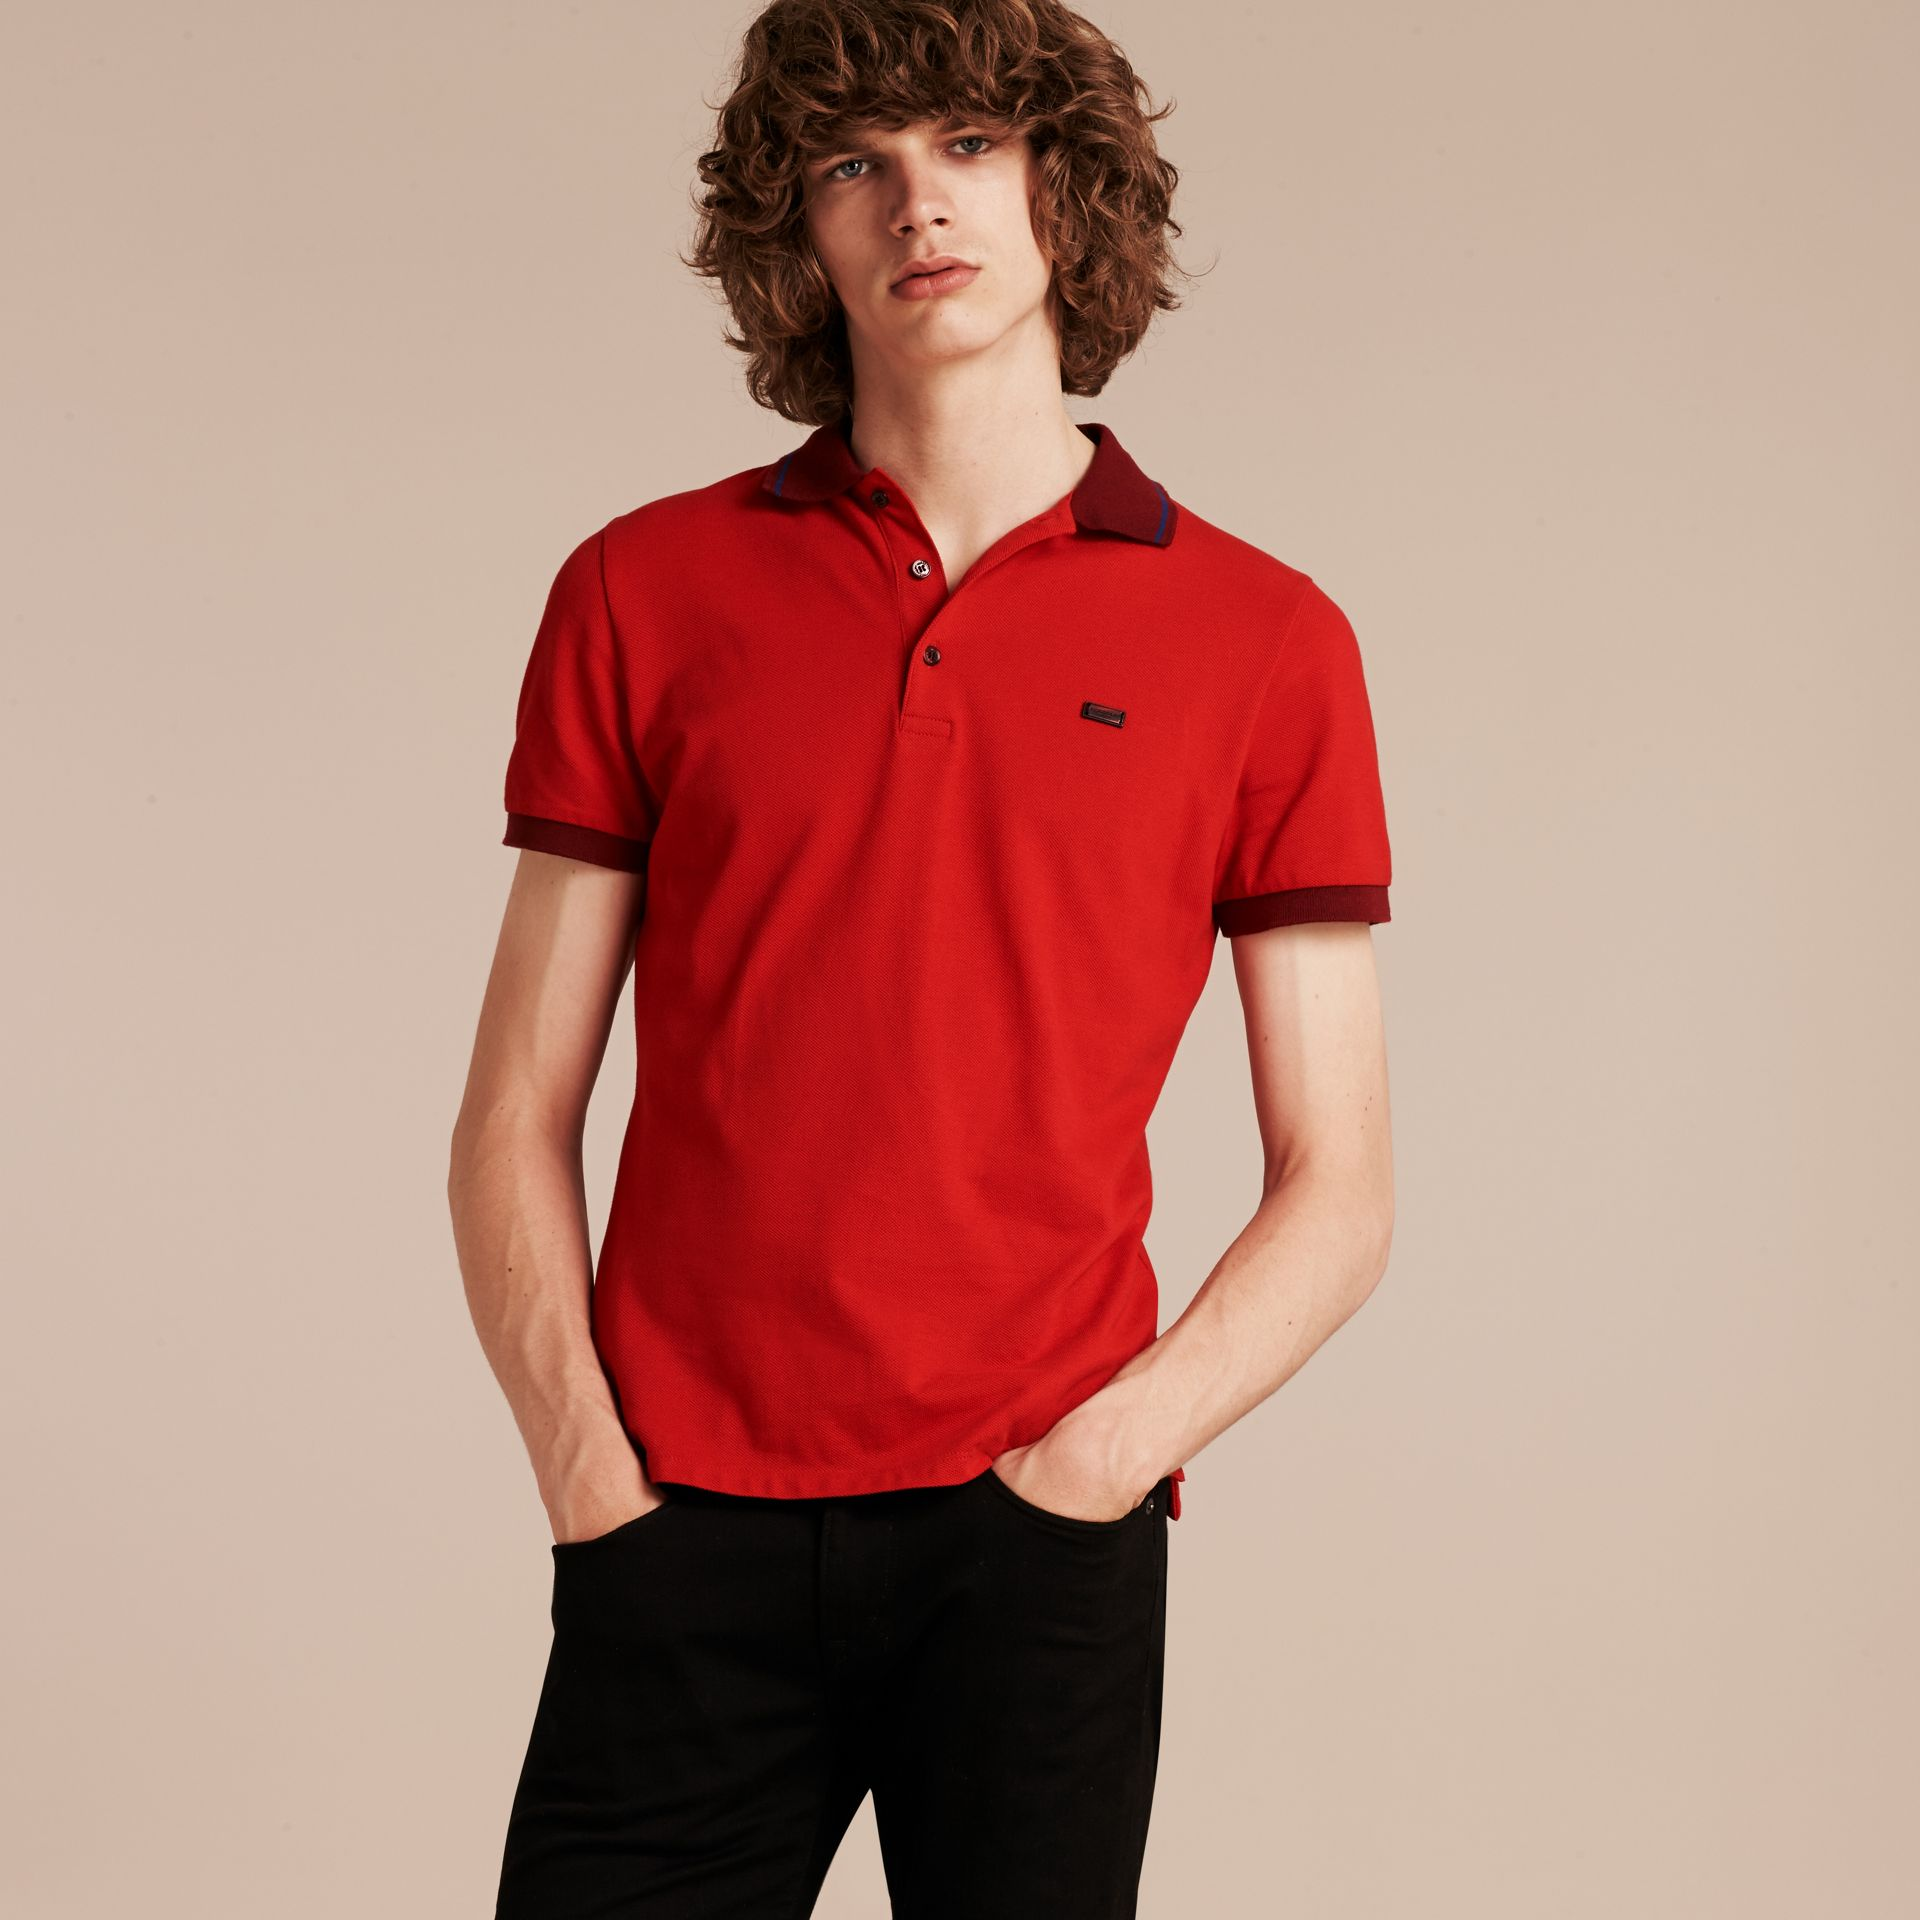 Union red/dark blue Contrast Trim Cotton Piqué Polo Shirt Union Red/dark Blue - gallery image 6